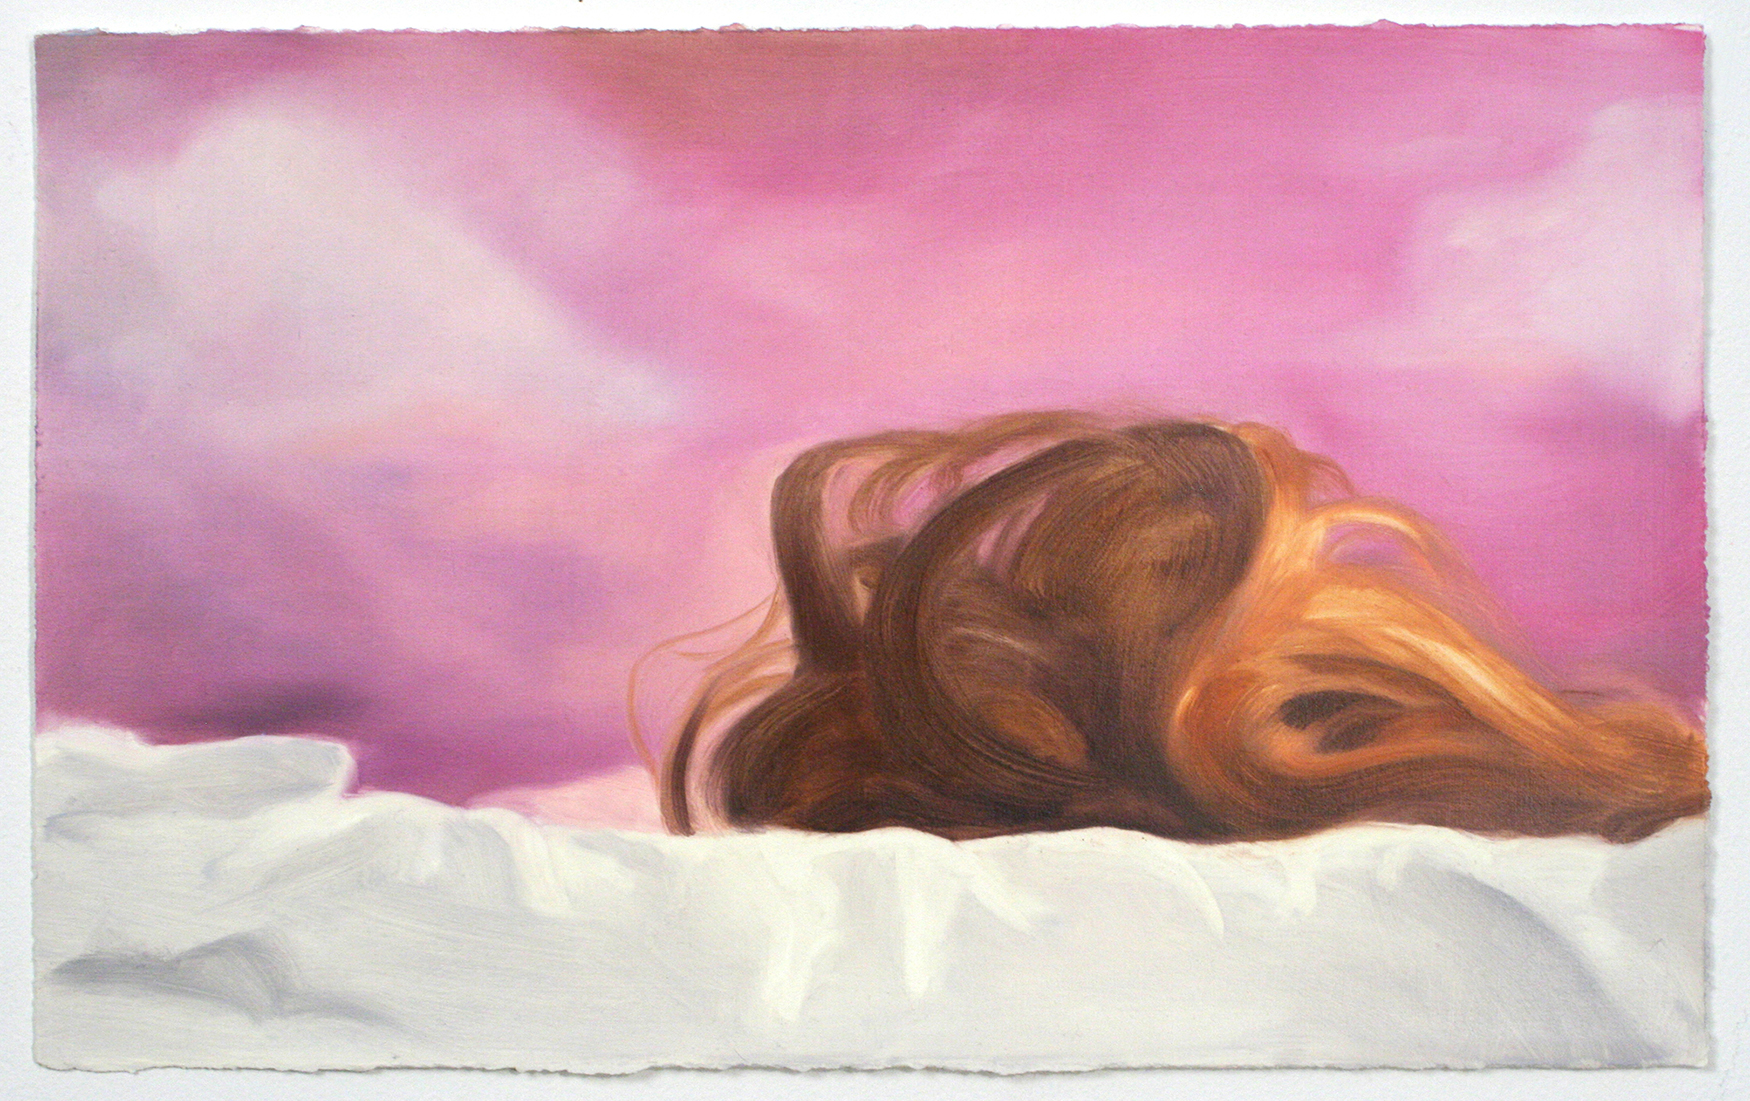 Sarah Kurz, It Was a Splendid Sight, 2013, oil on paper, 9 1/4 x 15 inches